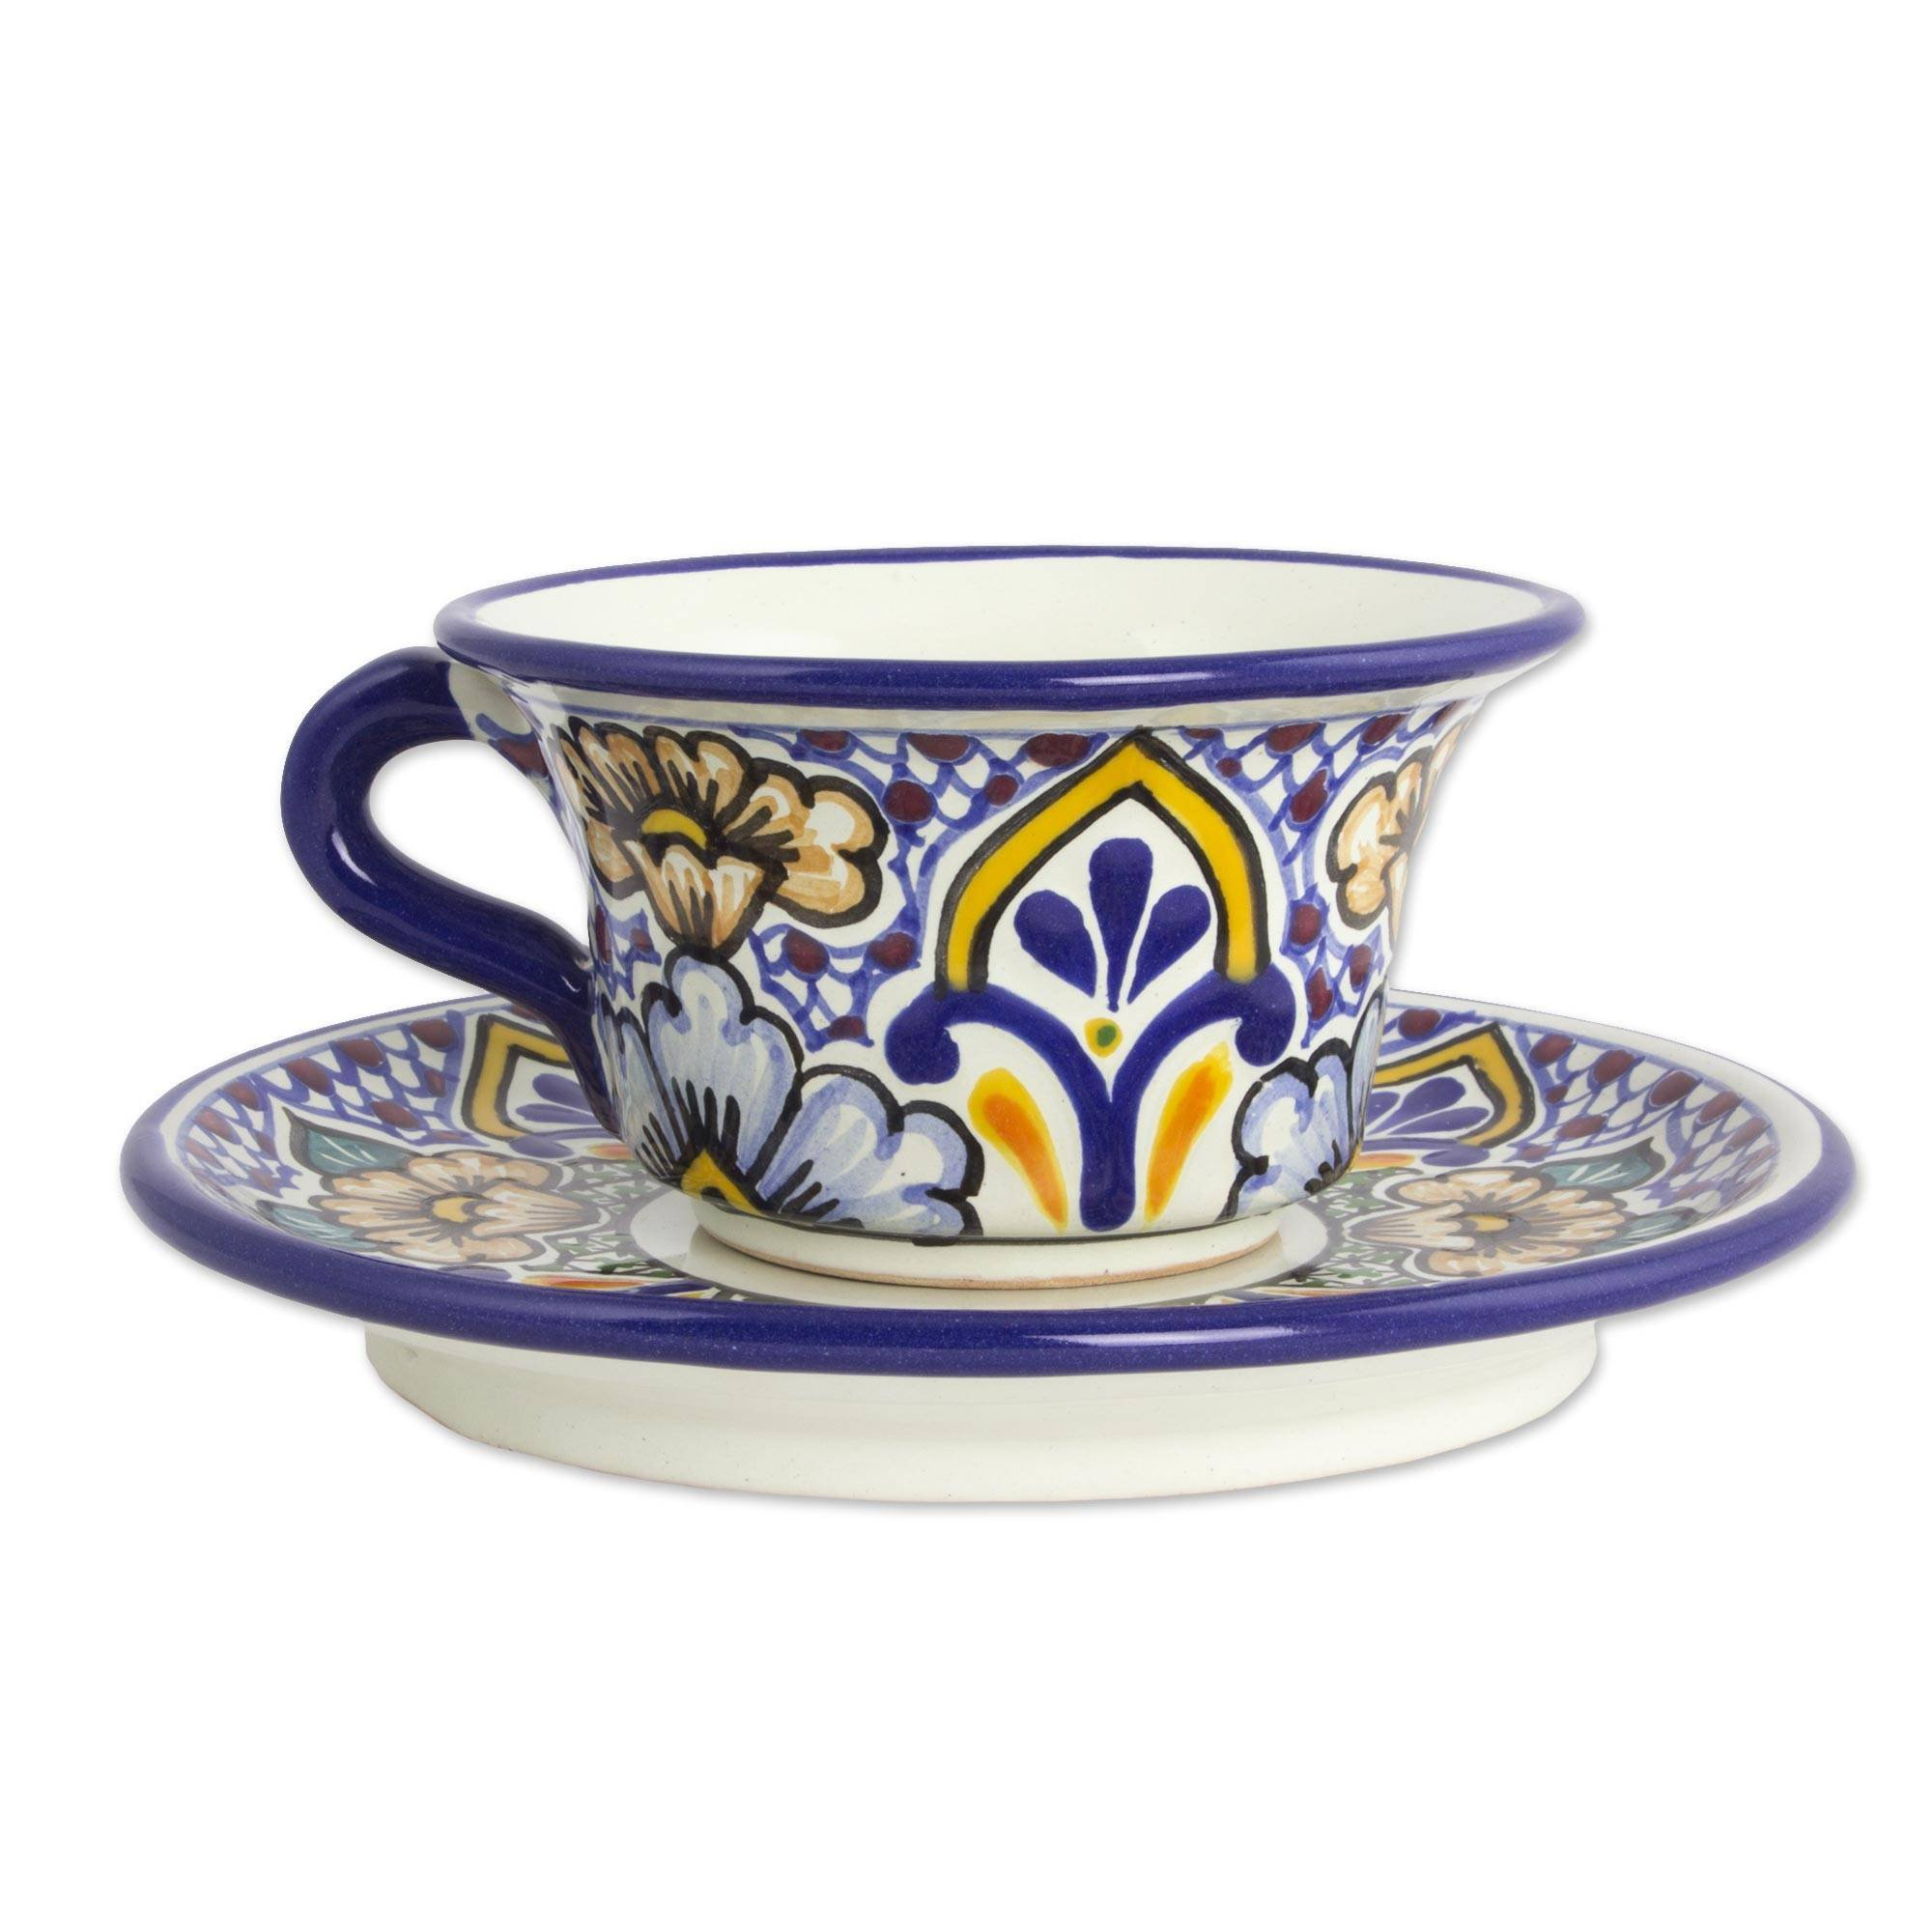 NOVICA Multicolor Ceramic Floral Cups & Saucers, 5 oz. 'Sunshine Kaleidoscope' (pair) by NOVICA